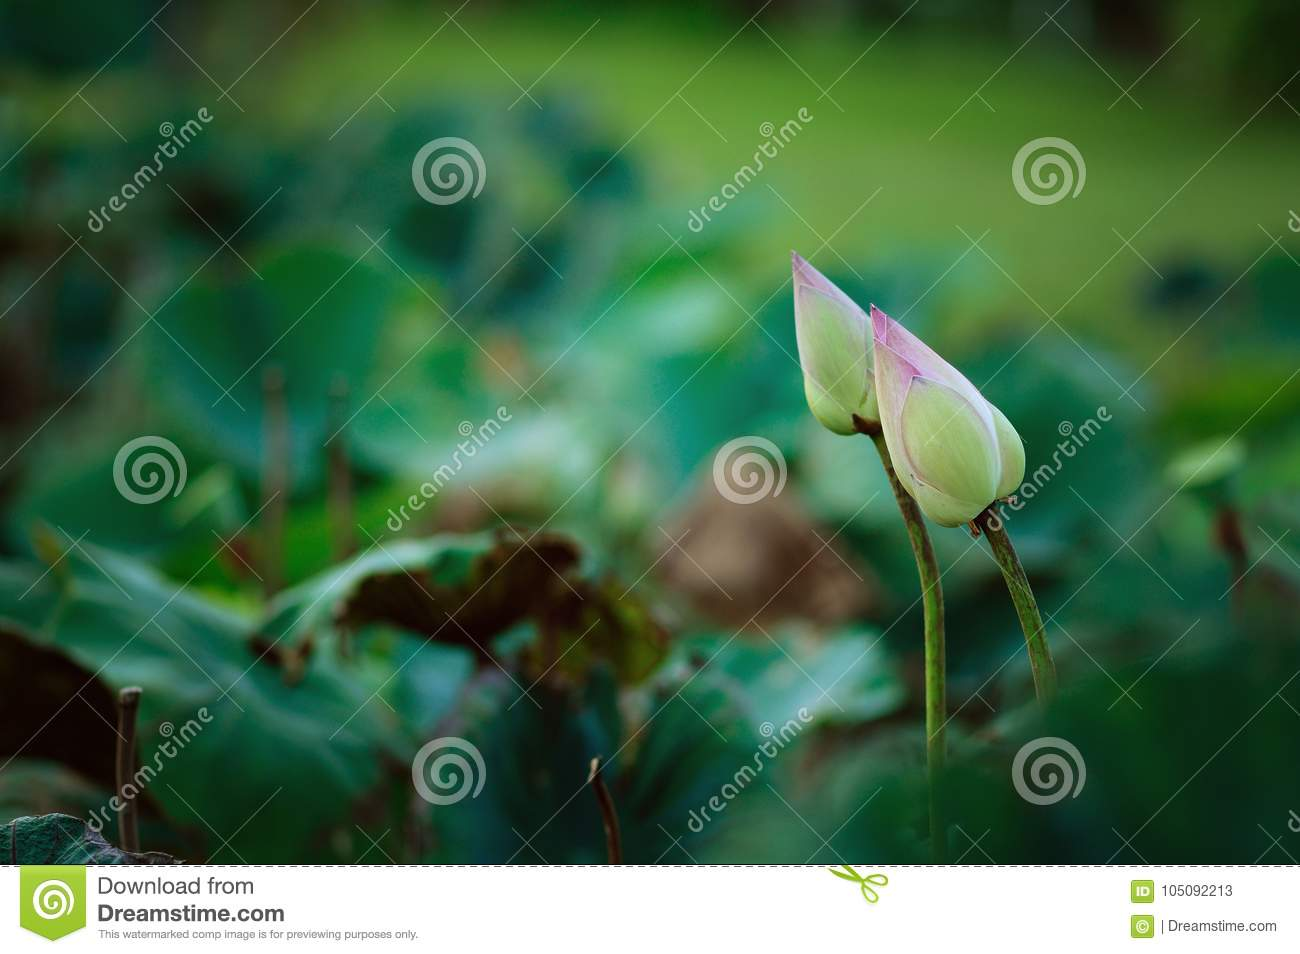 Lotus buds in green fields stock image image of symbol 105092213 royalty free stock photo izmirmasajfo